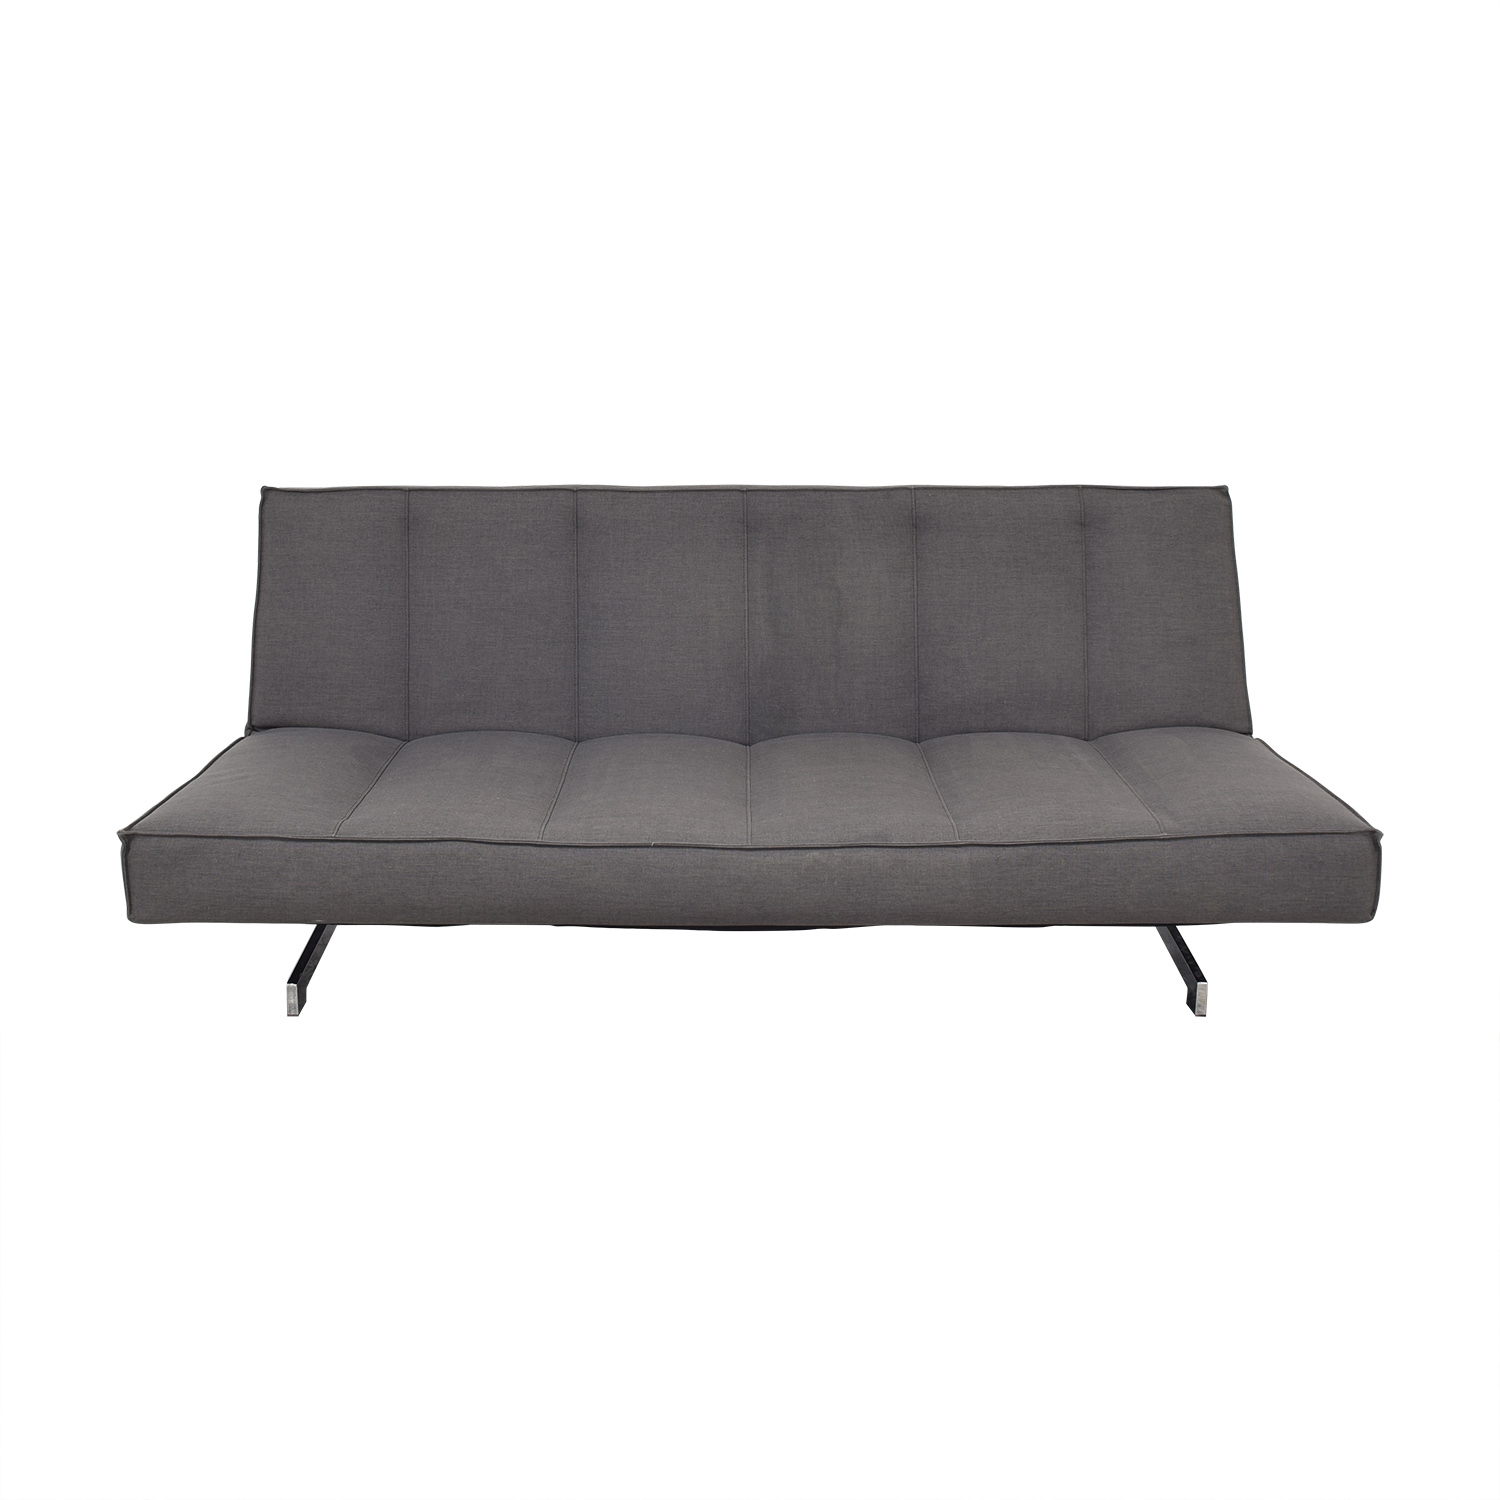 Innovation Living Innovation Living Sofa Bed price